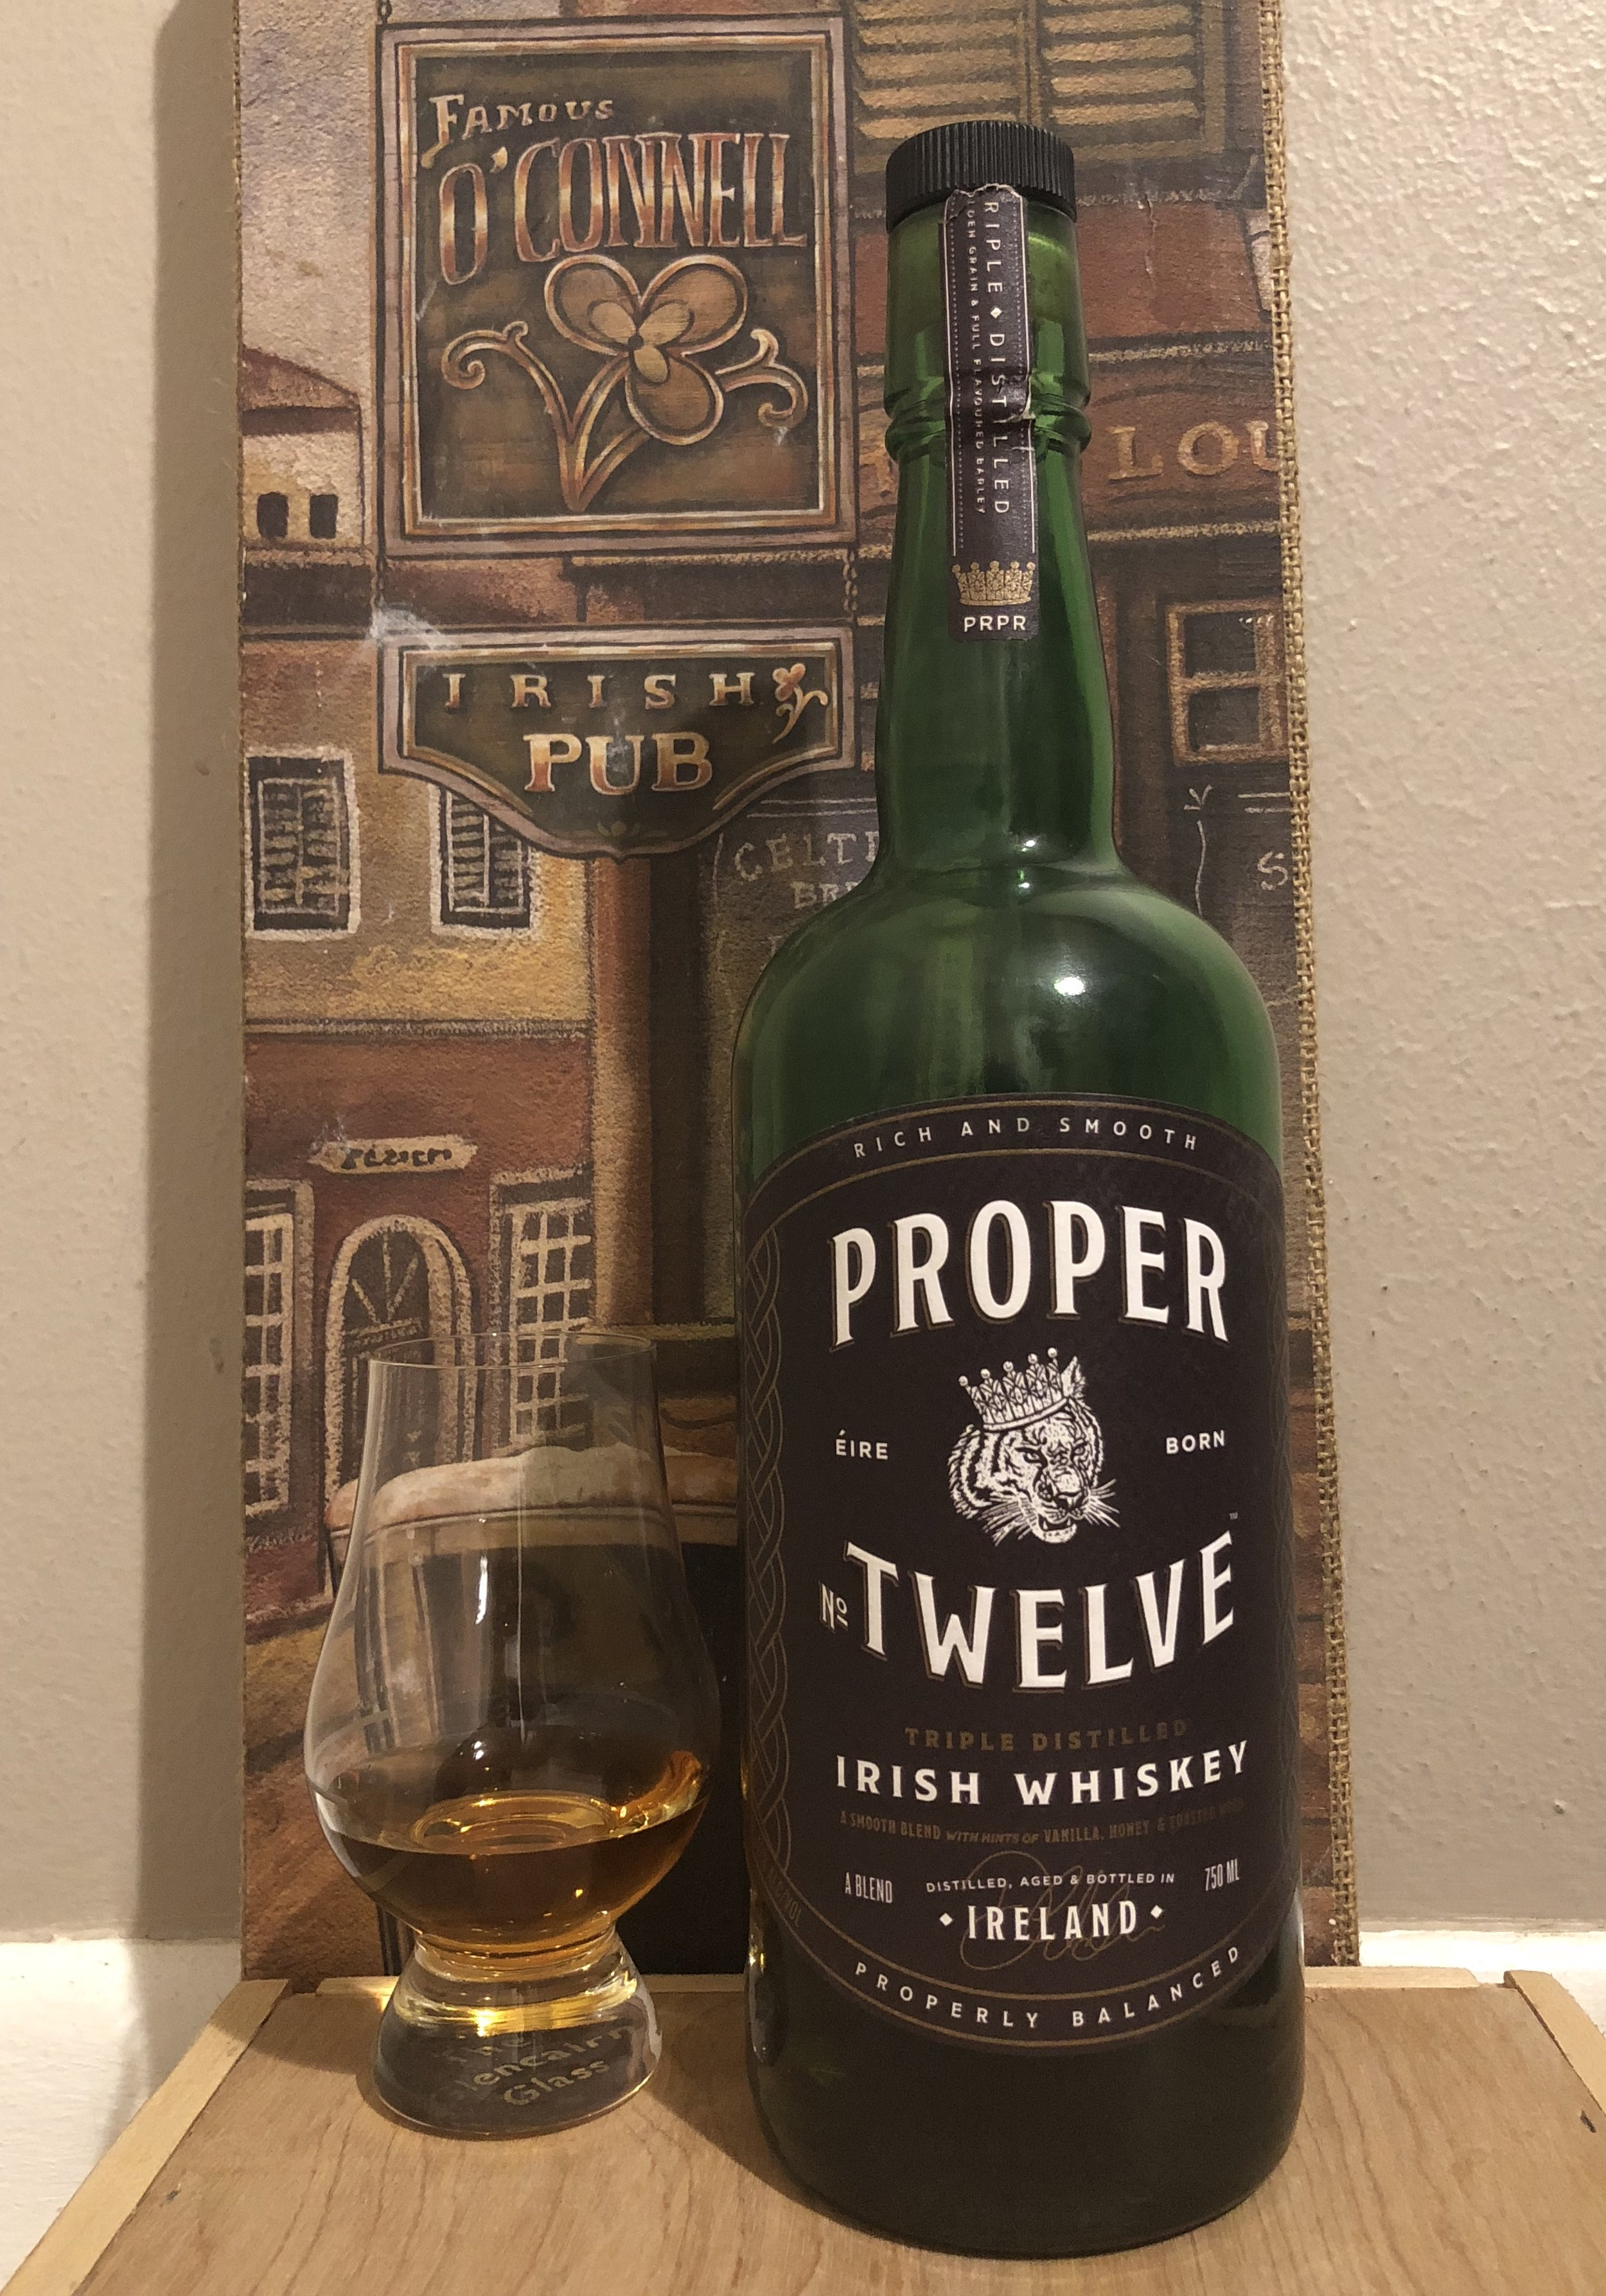 Episode the 24th - All Hallow's Eve - A whiskey review, ghosts, exorcism's, and sleep paralysis